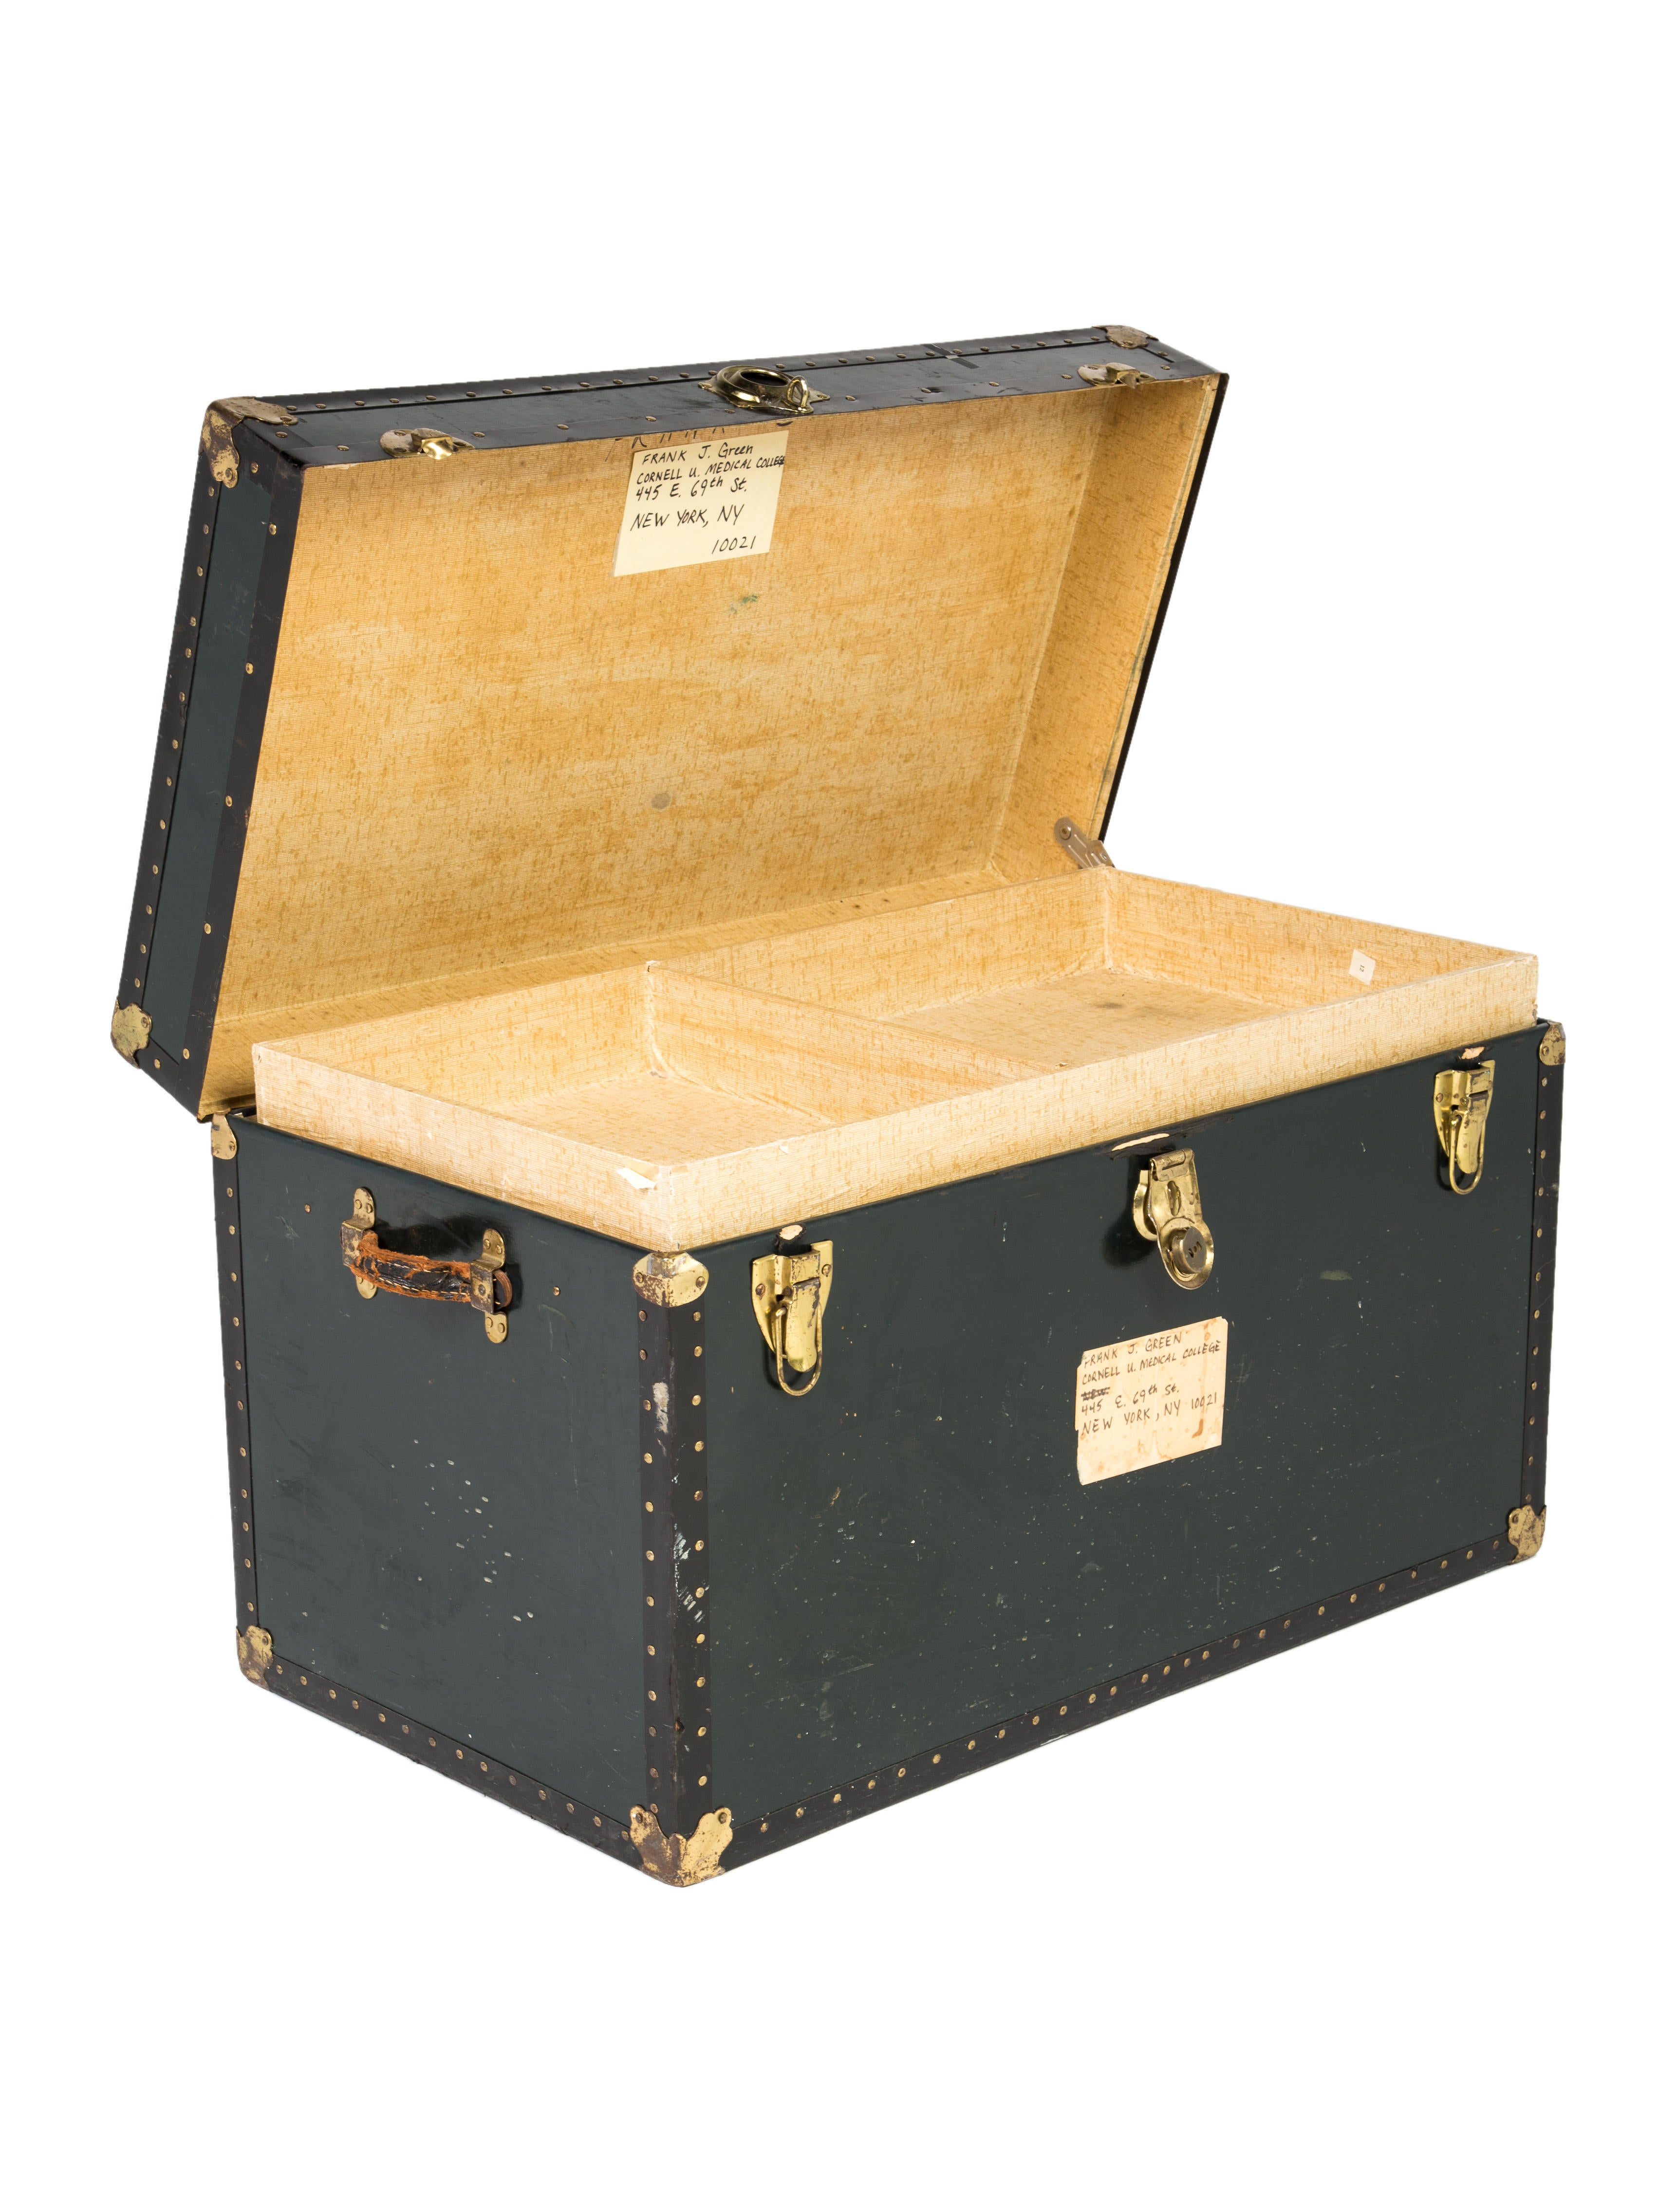 Vintage Trunk Decor And Accessories Decor20921 The